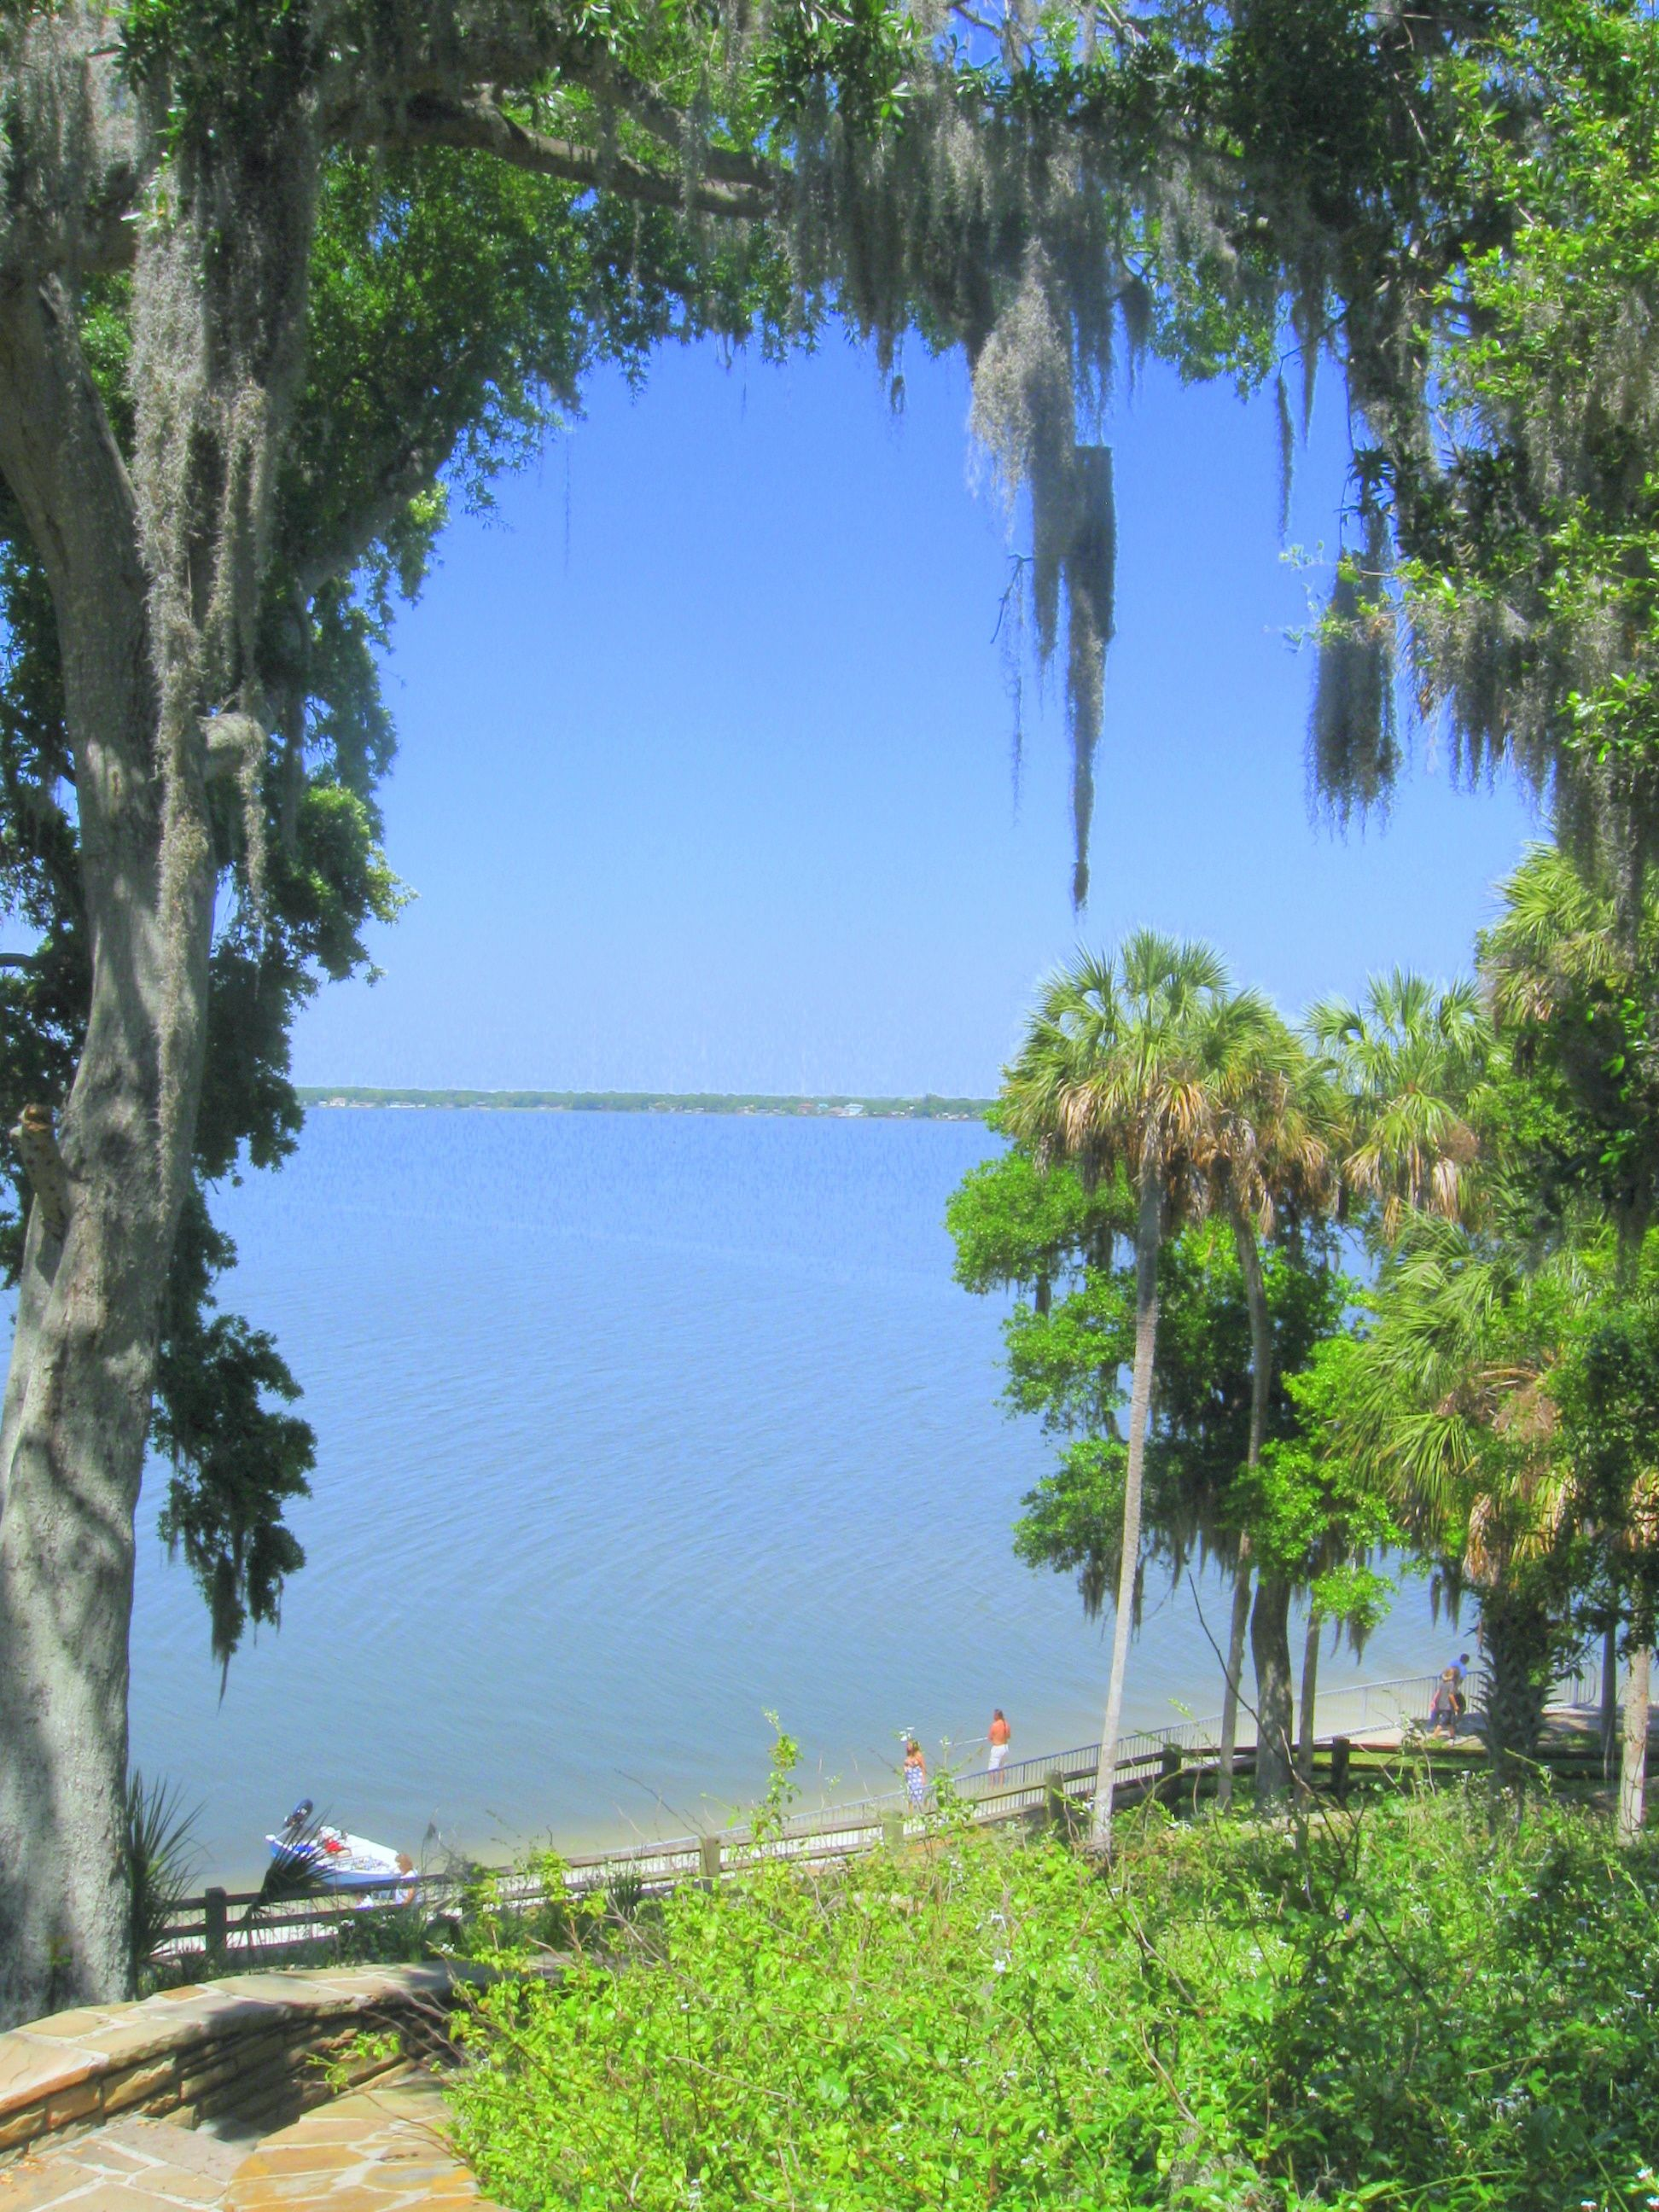 Philippe Park Safety Harbor Fl My Former Home Florida Attractions Safety Harbor Places In Florida